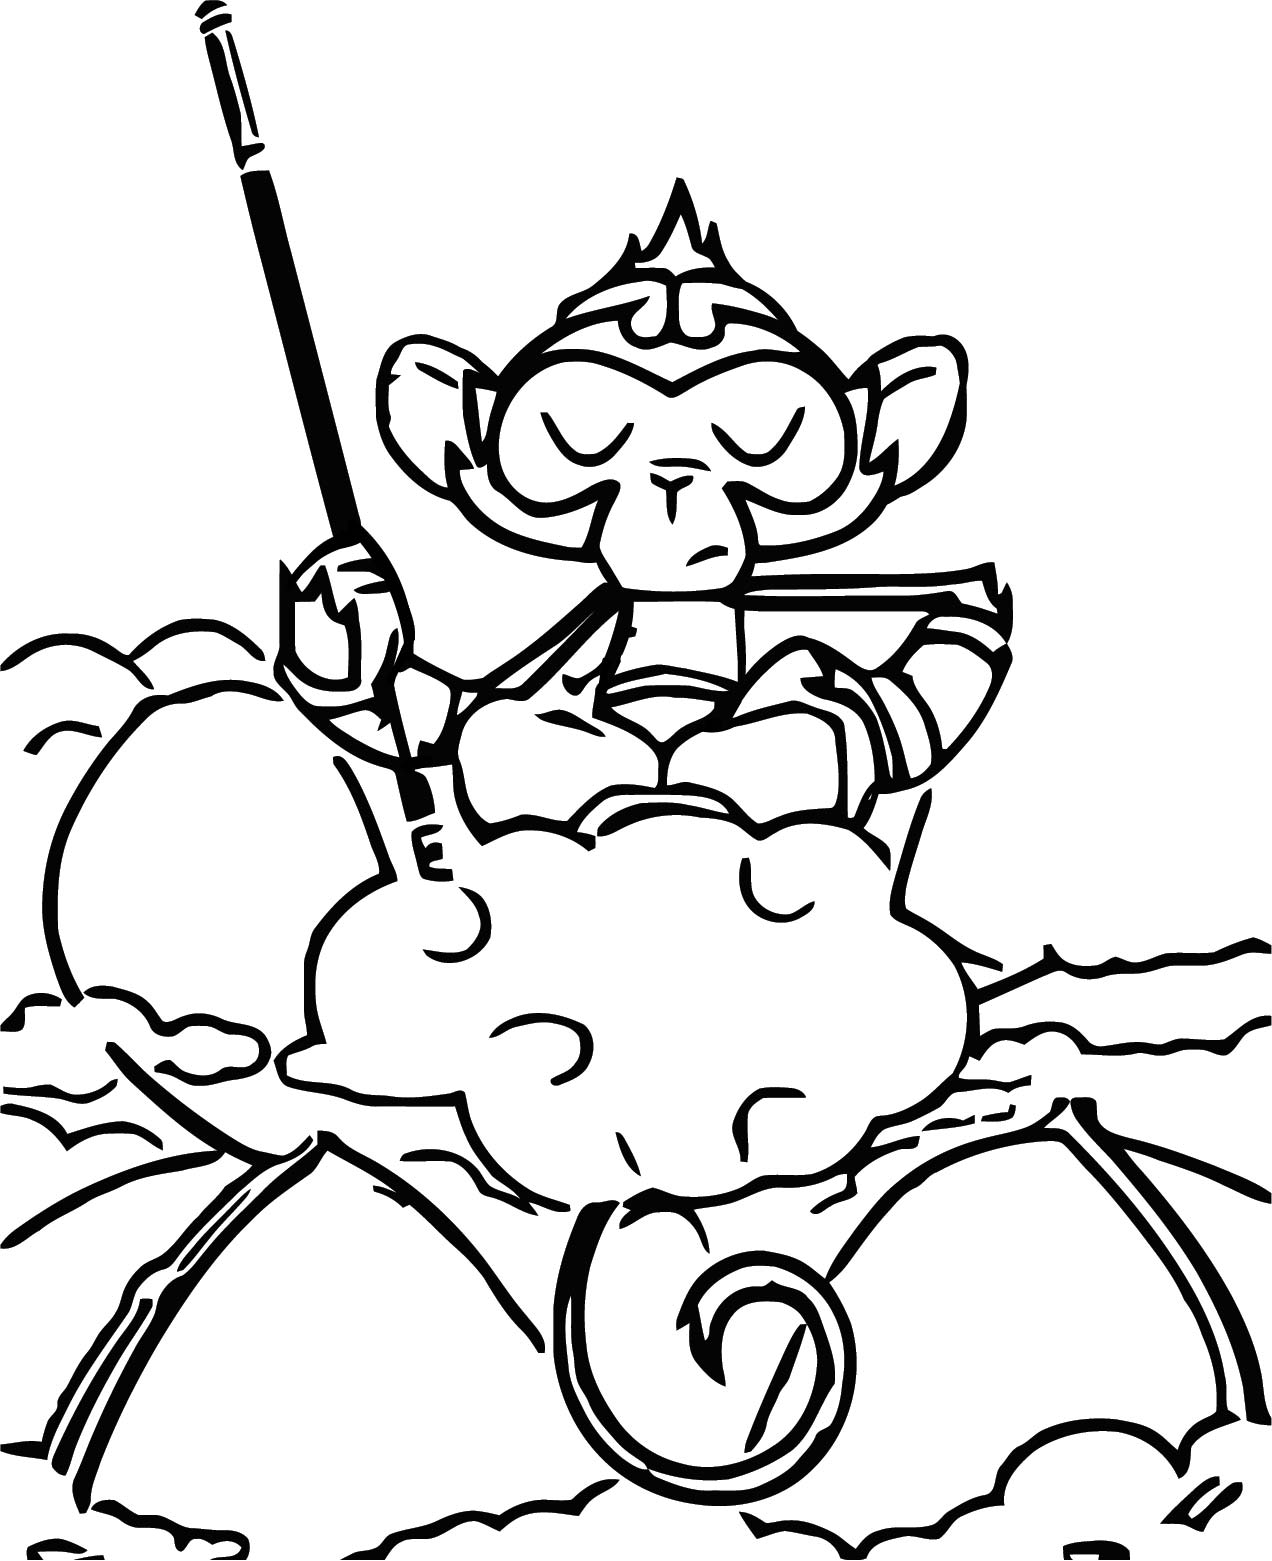 Character Designs Monkey Cloud Cartoon Coloring Page